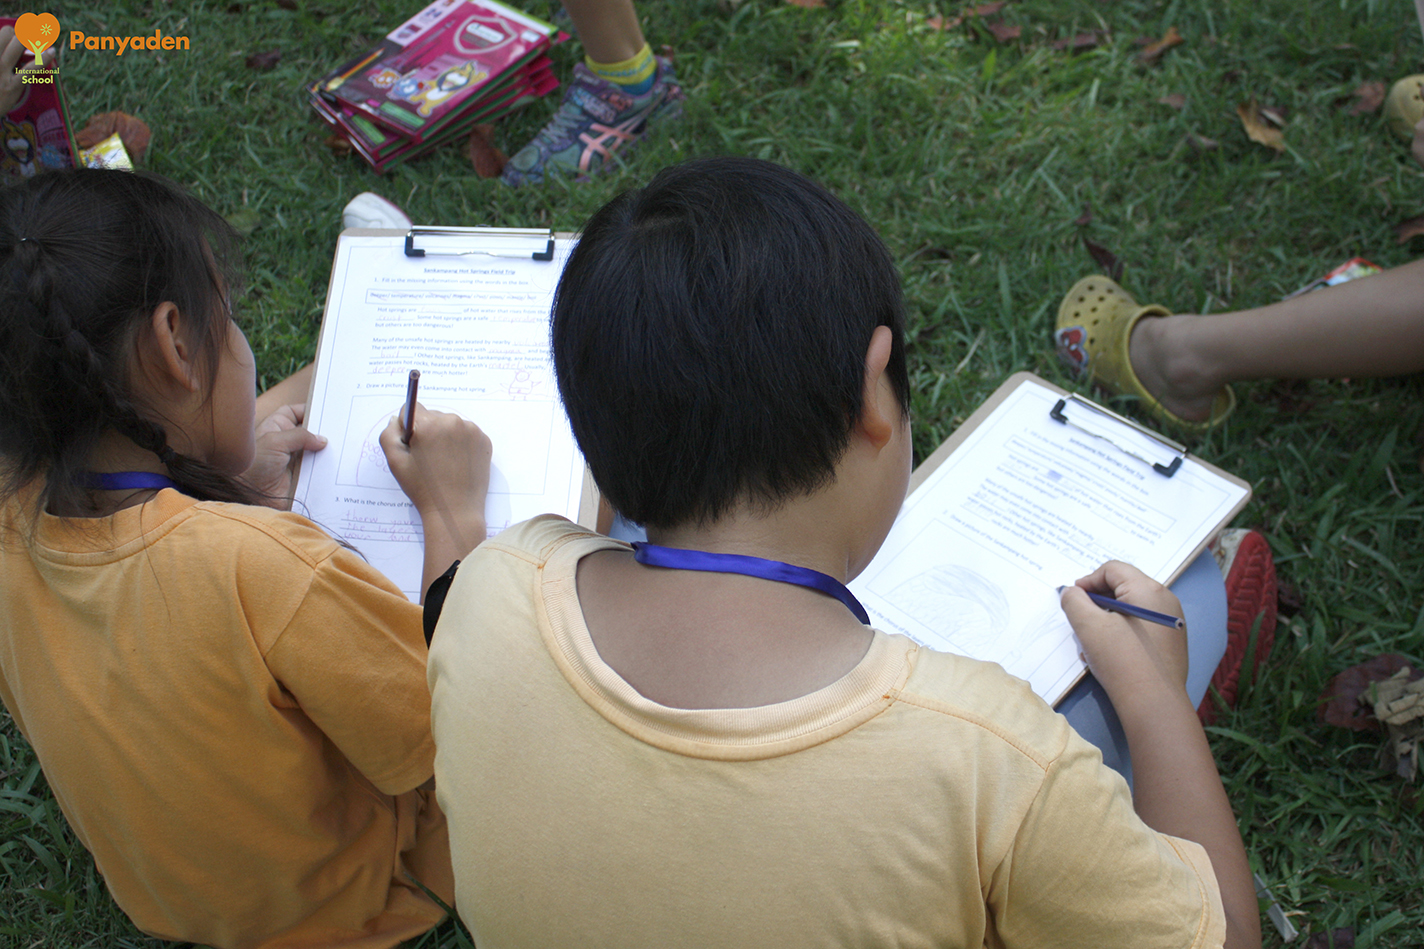 Panyaden Year 4 field trip - students writing down what they have learnt